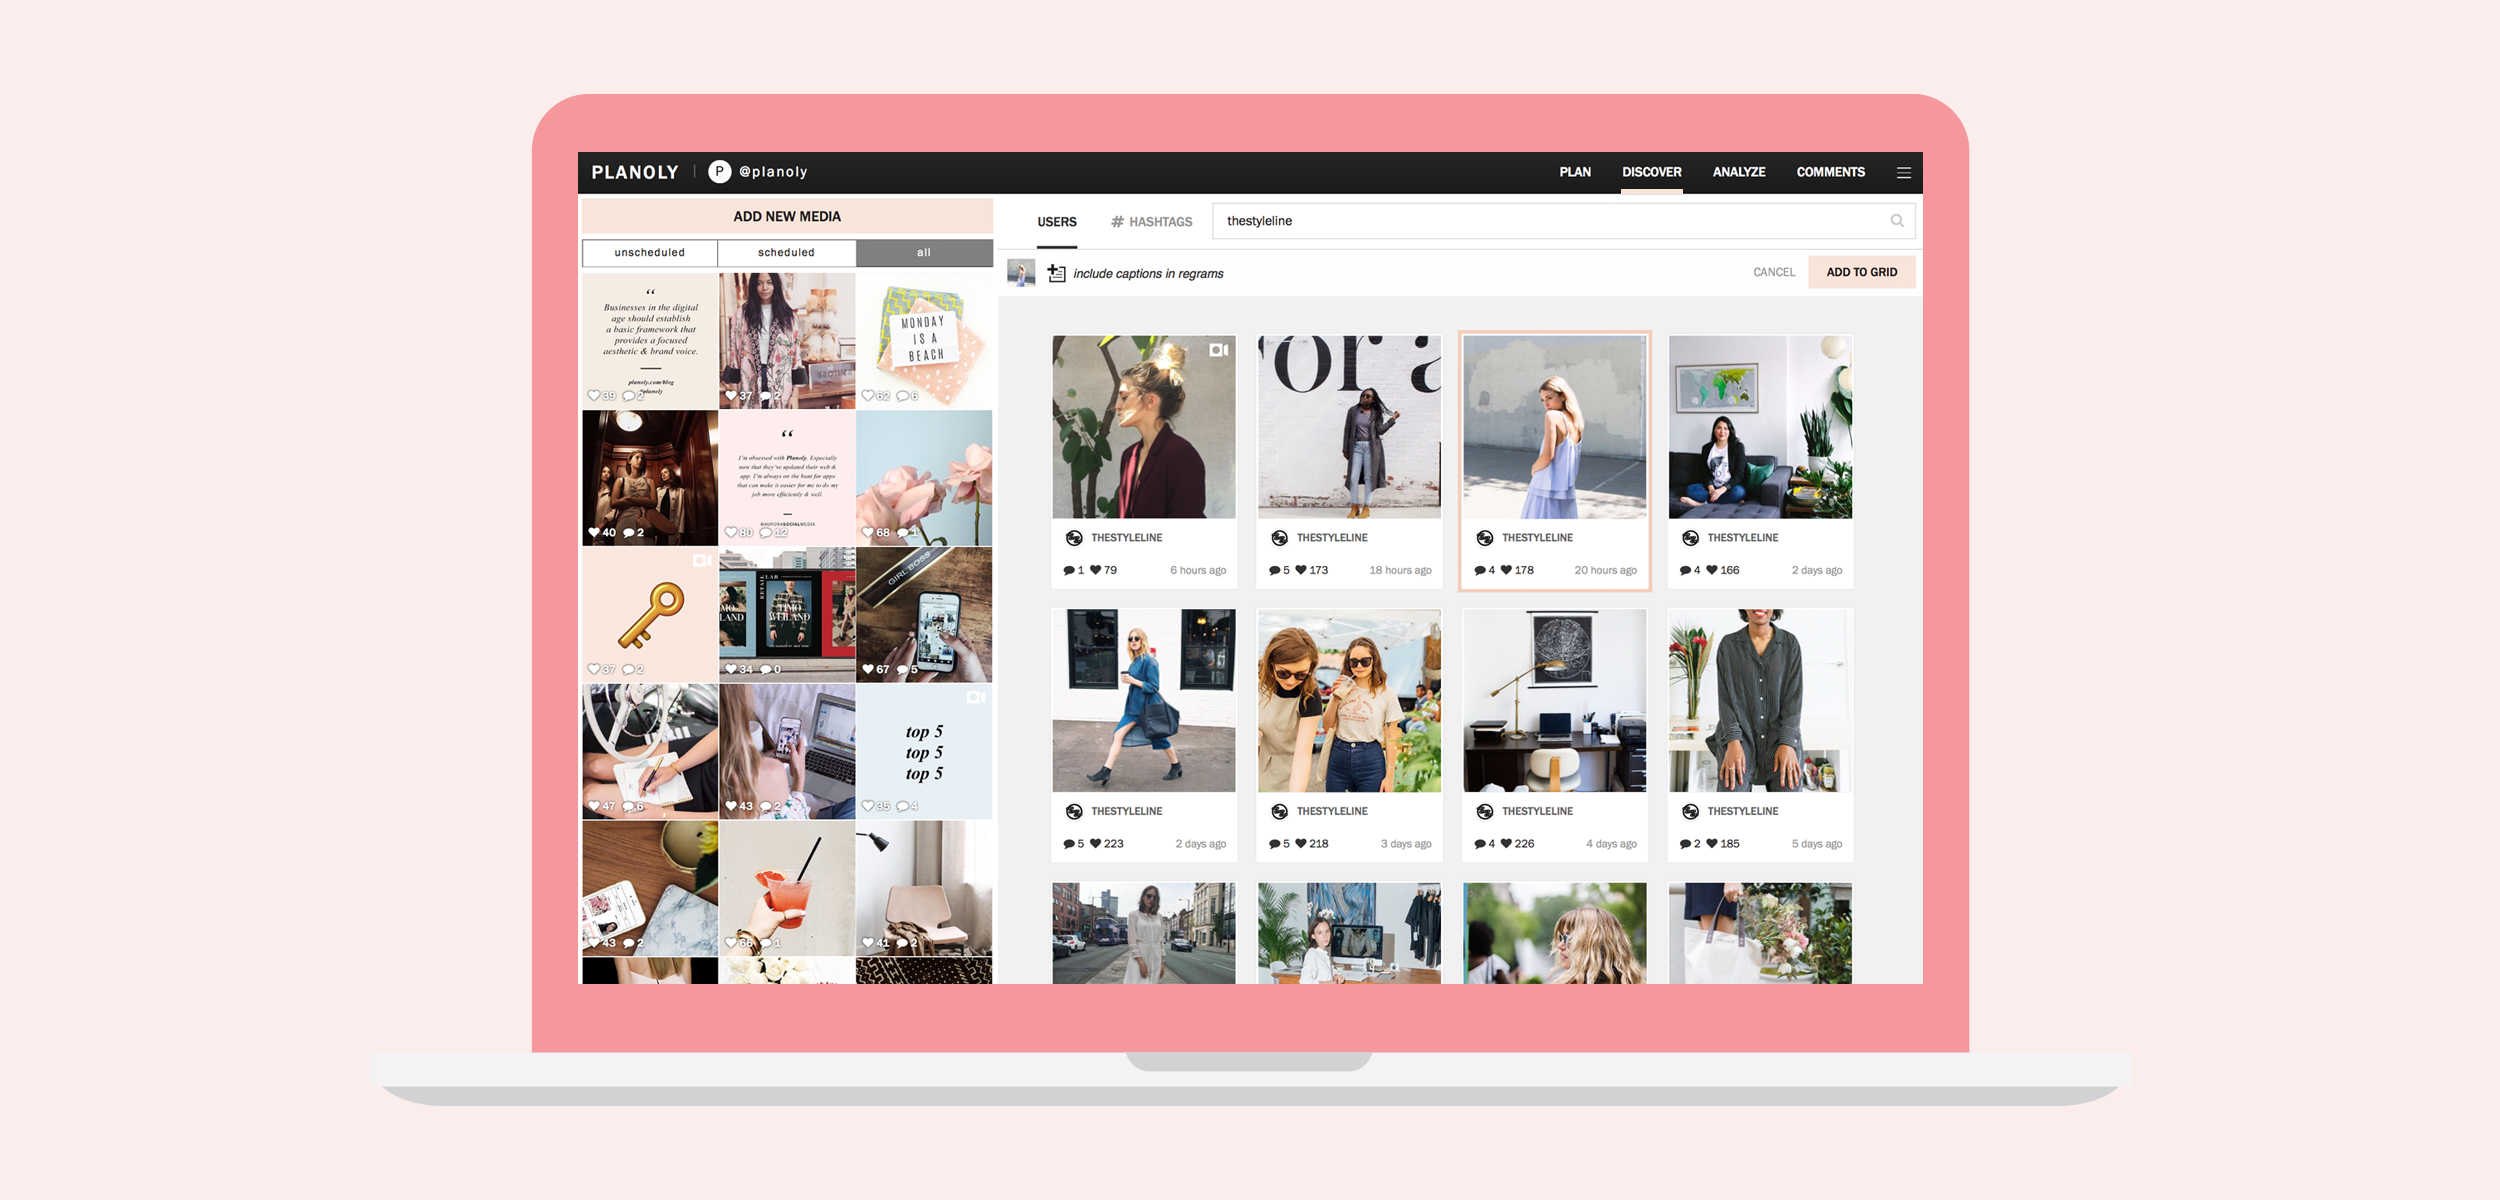 Discovering User Generated Content on Planoly